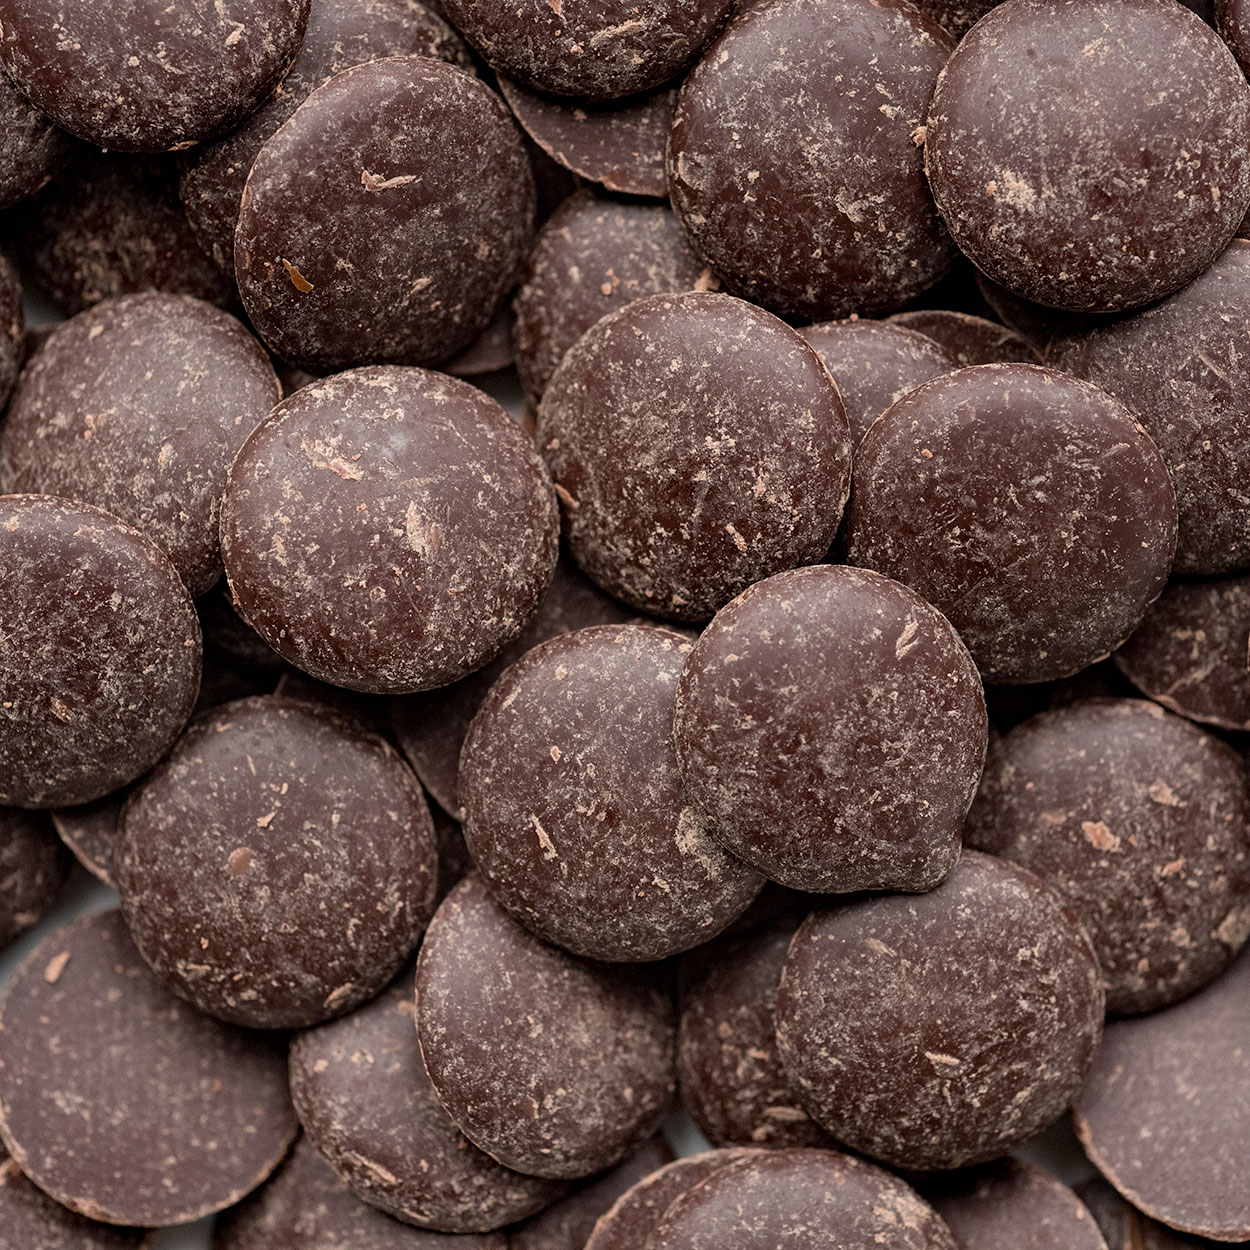 Agostoni 70% Madagascar Origins Dark Couverture Chocolate - 1 pound